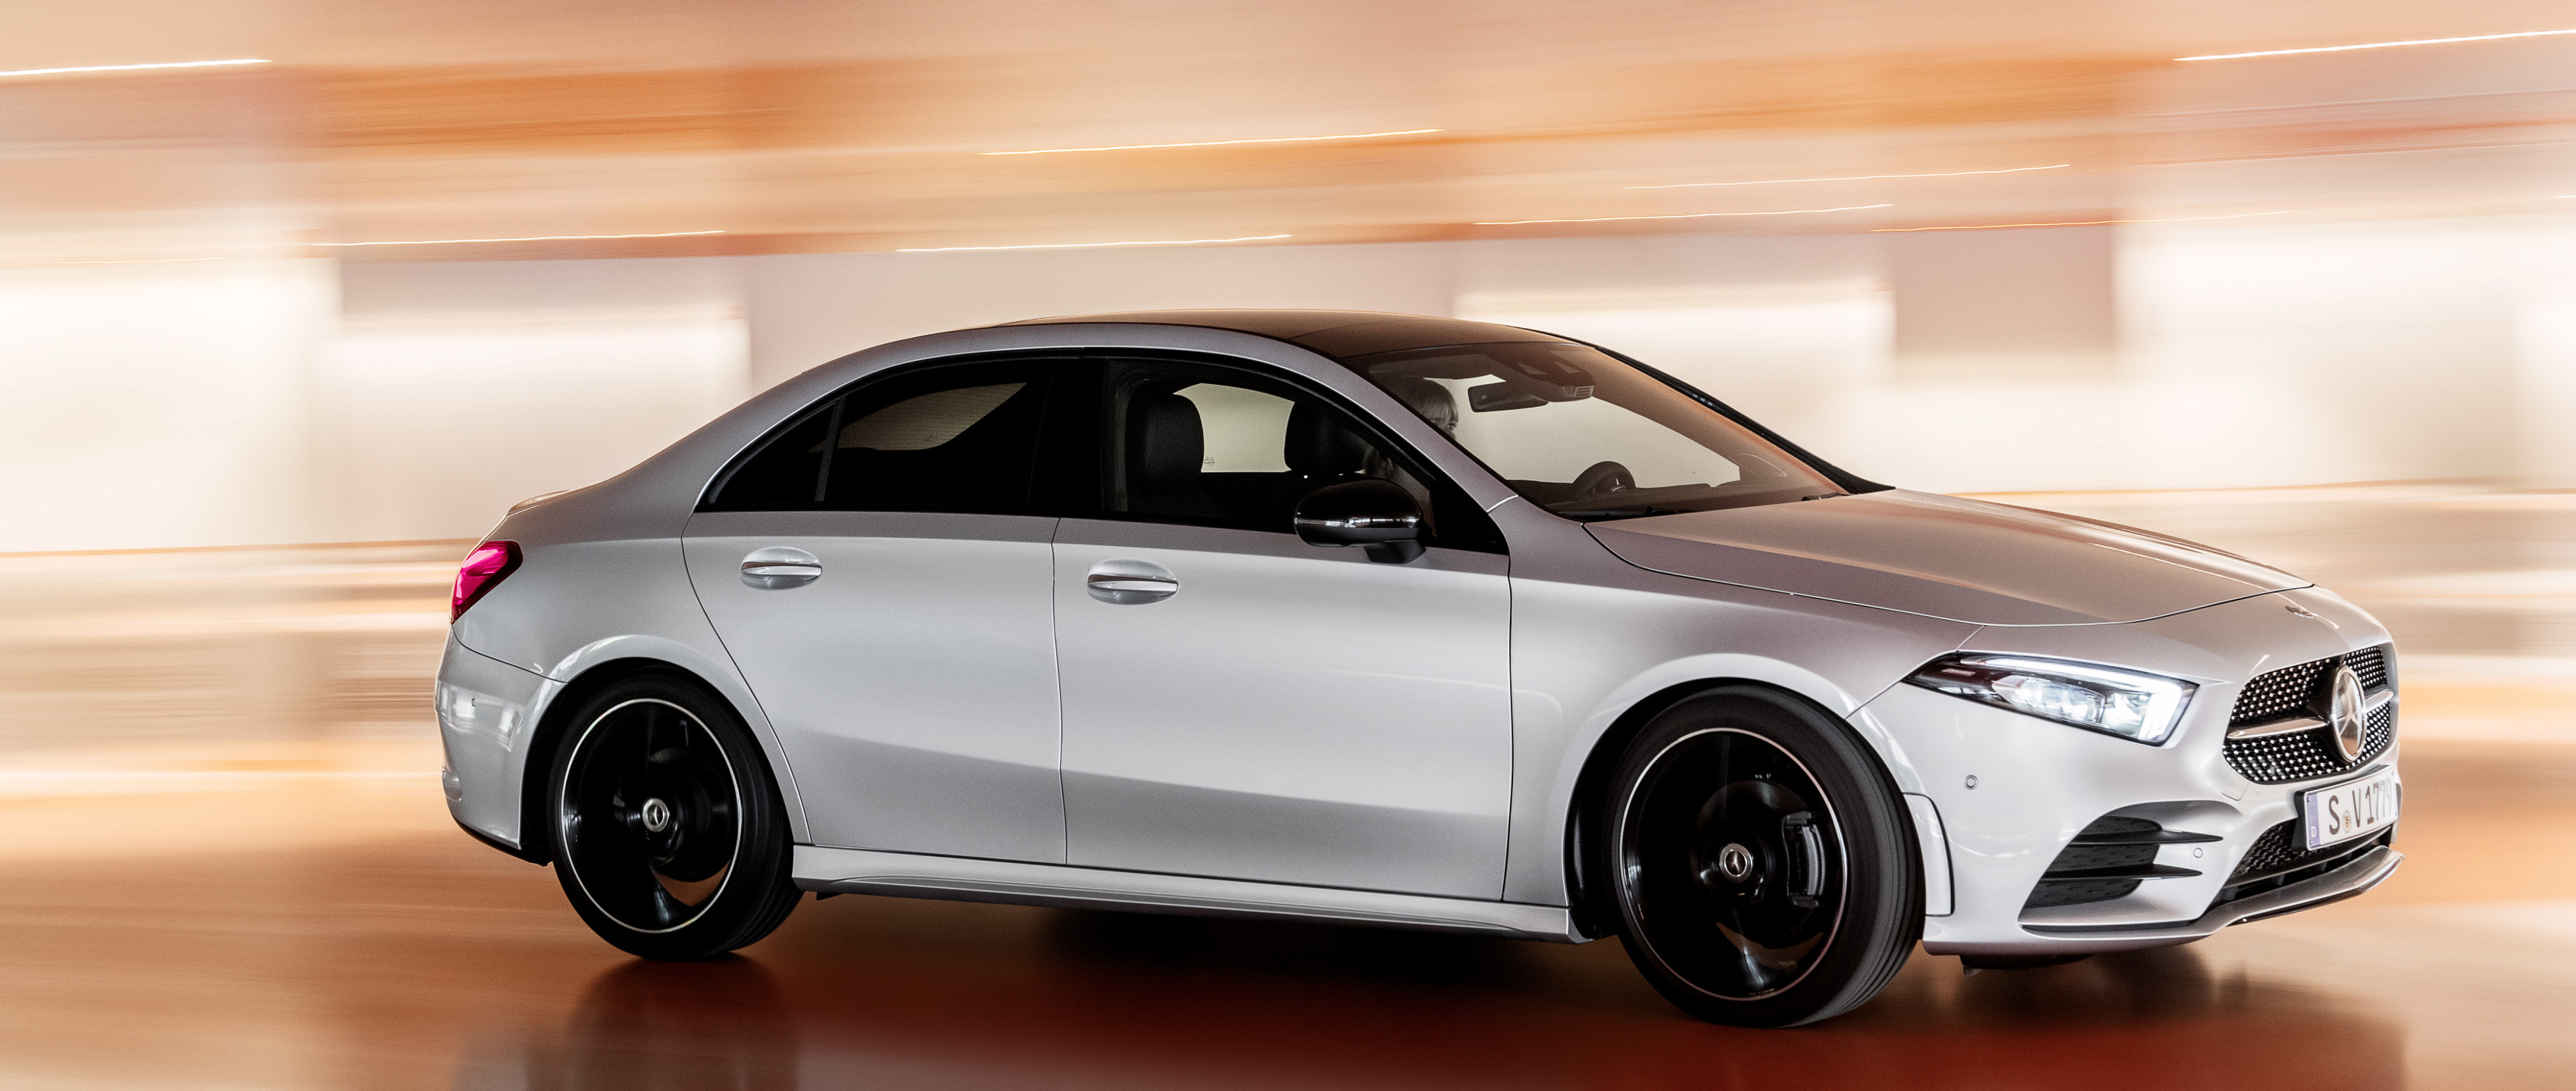 28 Mercedes A Class Saloon Wallpapers On Wallpapersafari